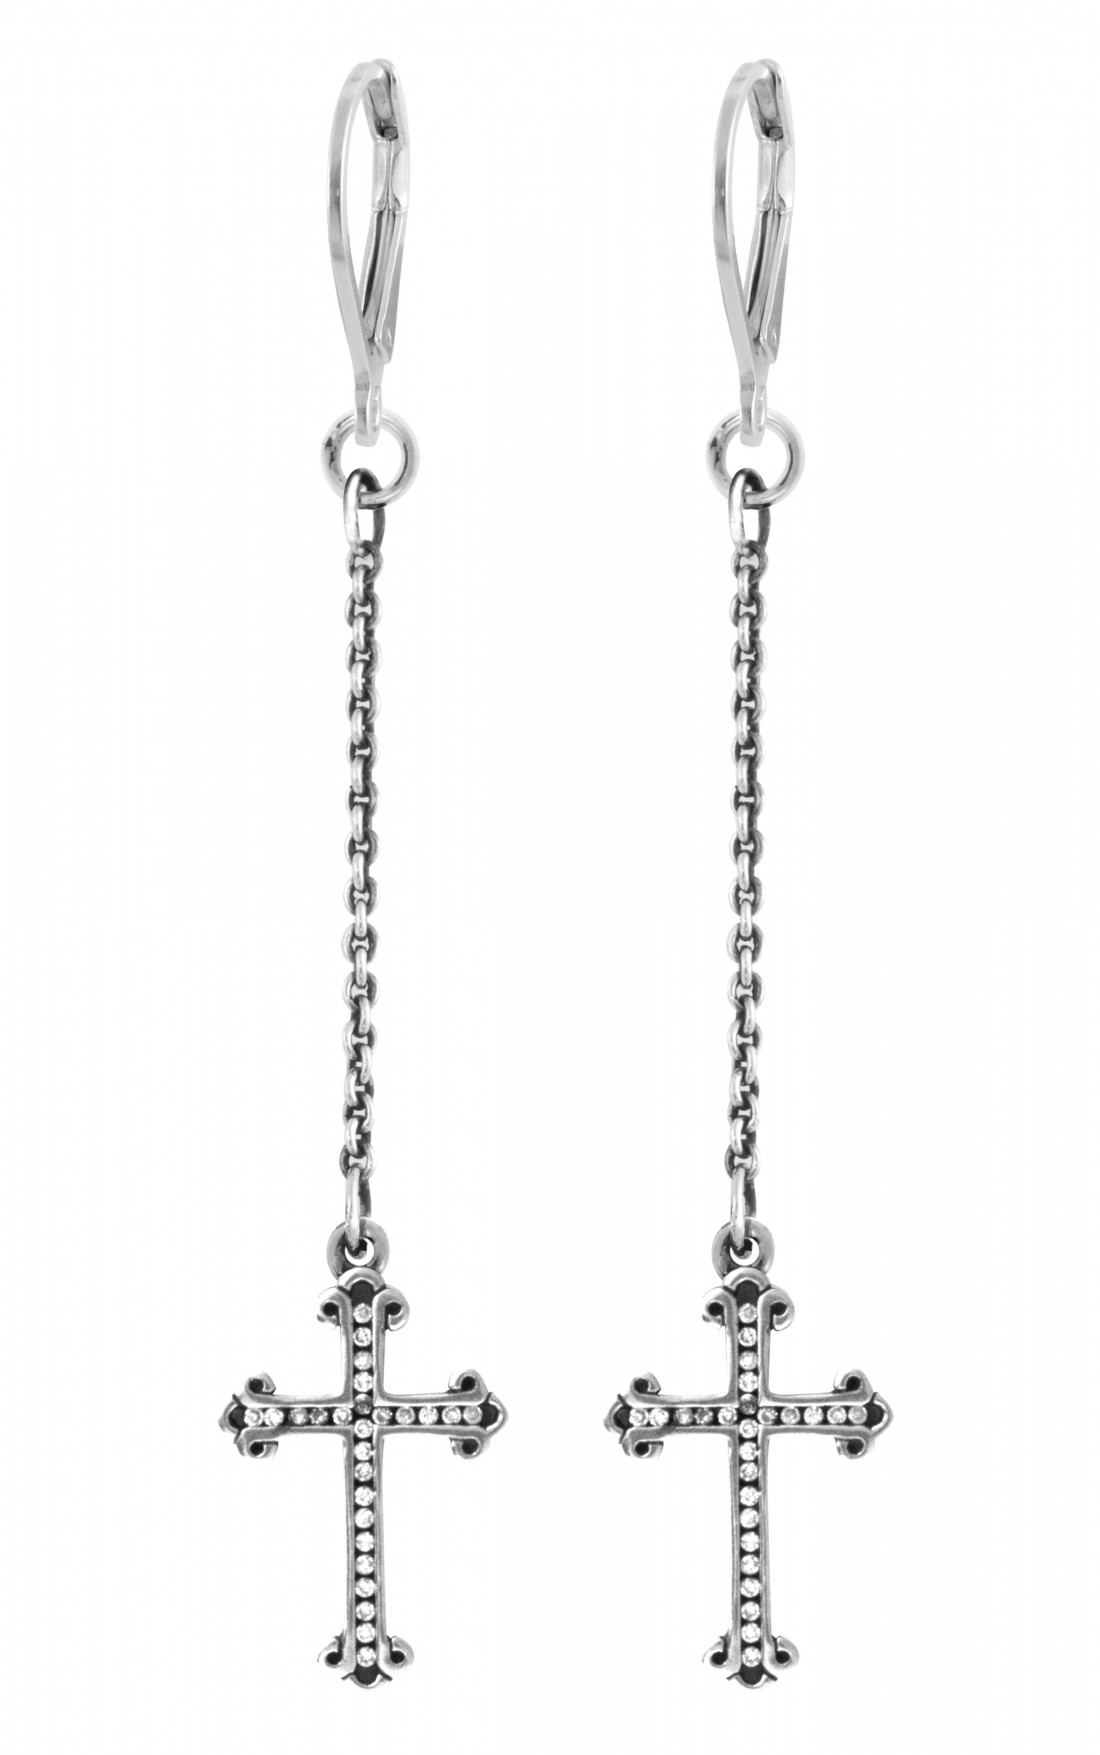 King Baby - Ear Thread Earrings with Traditional Cross Drops with Pave Cz (Q60-9058)